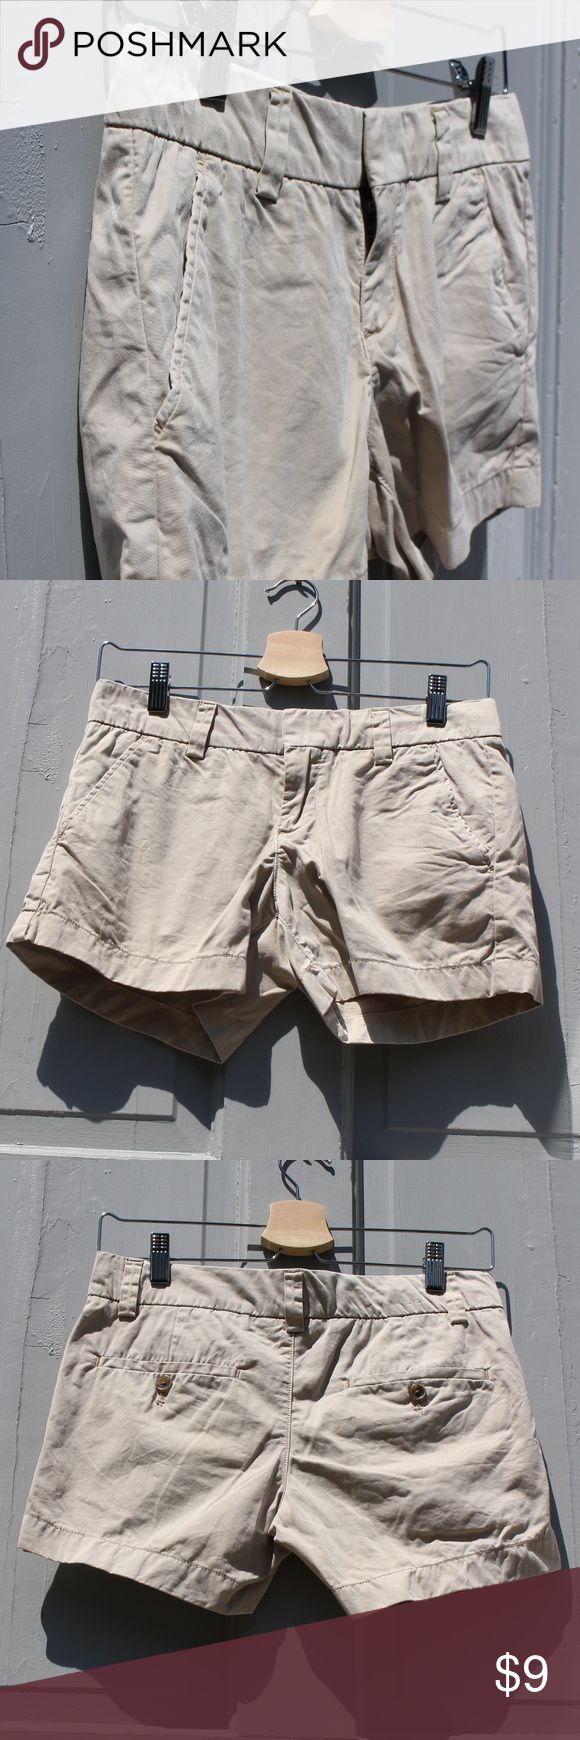 """EUC Uniqlo Natural Beige Chino Shorts Perfect everyday chino shorts by Uniqlo, purchased in Tokyo. Very comfortable. 100% Cotton. Gently worn and washed only a few times. Excellent condition. Measurements: Inseam 4"""", Rise 8.5"""". 15"""" at waist laying flat. Japanese size 61cm, fits like US size 0.  Sorry, no trade! Uniqlo Shorts"""